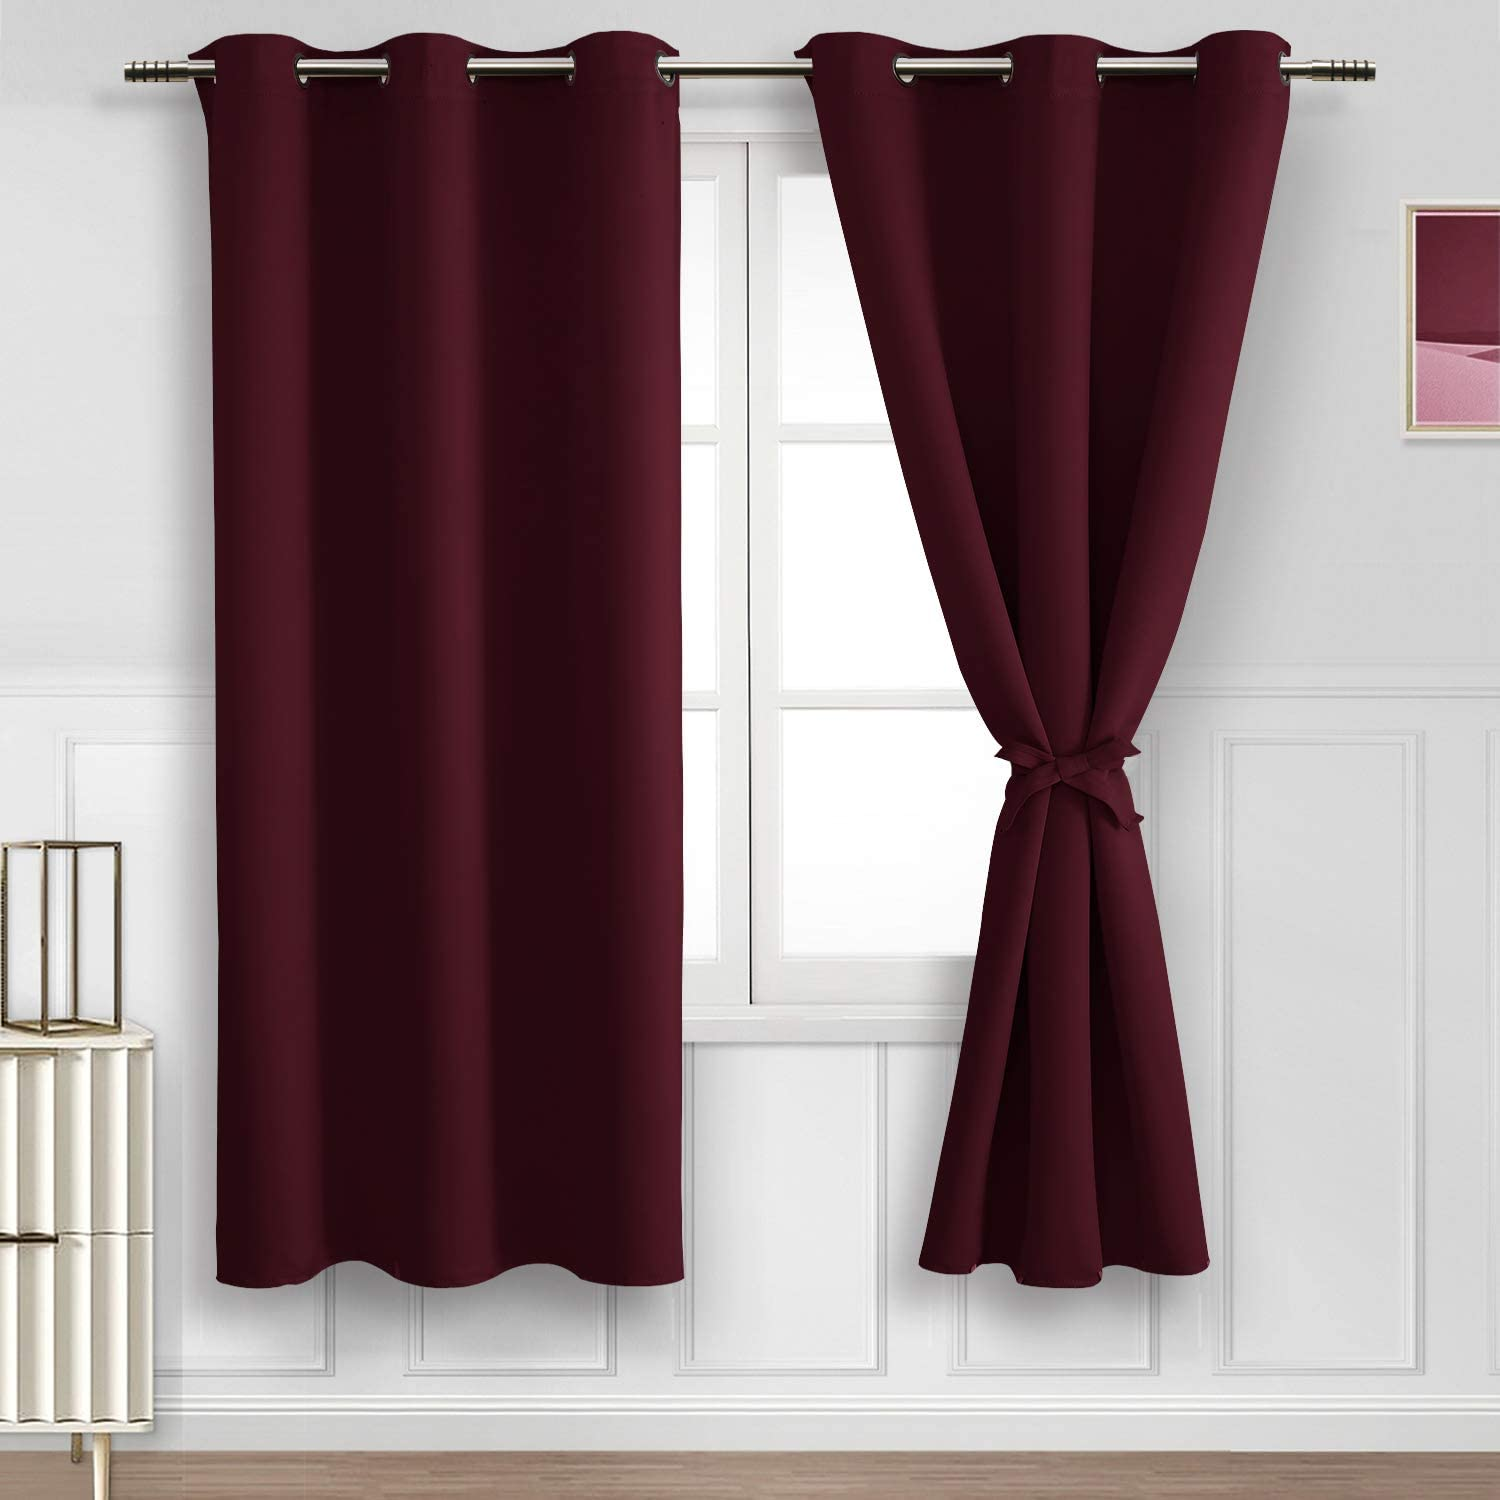 Hiasan Blackout Curtains for Bedroom, 42 x 63 Inches Length - Thermal Insulated & Light Blocking Window Curtains for Living Room/Kids Room, 2 Drape Panels Sewn with Tiebacks, Burgundy